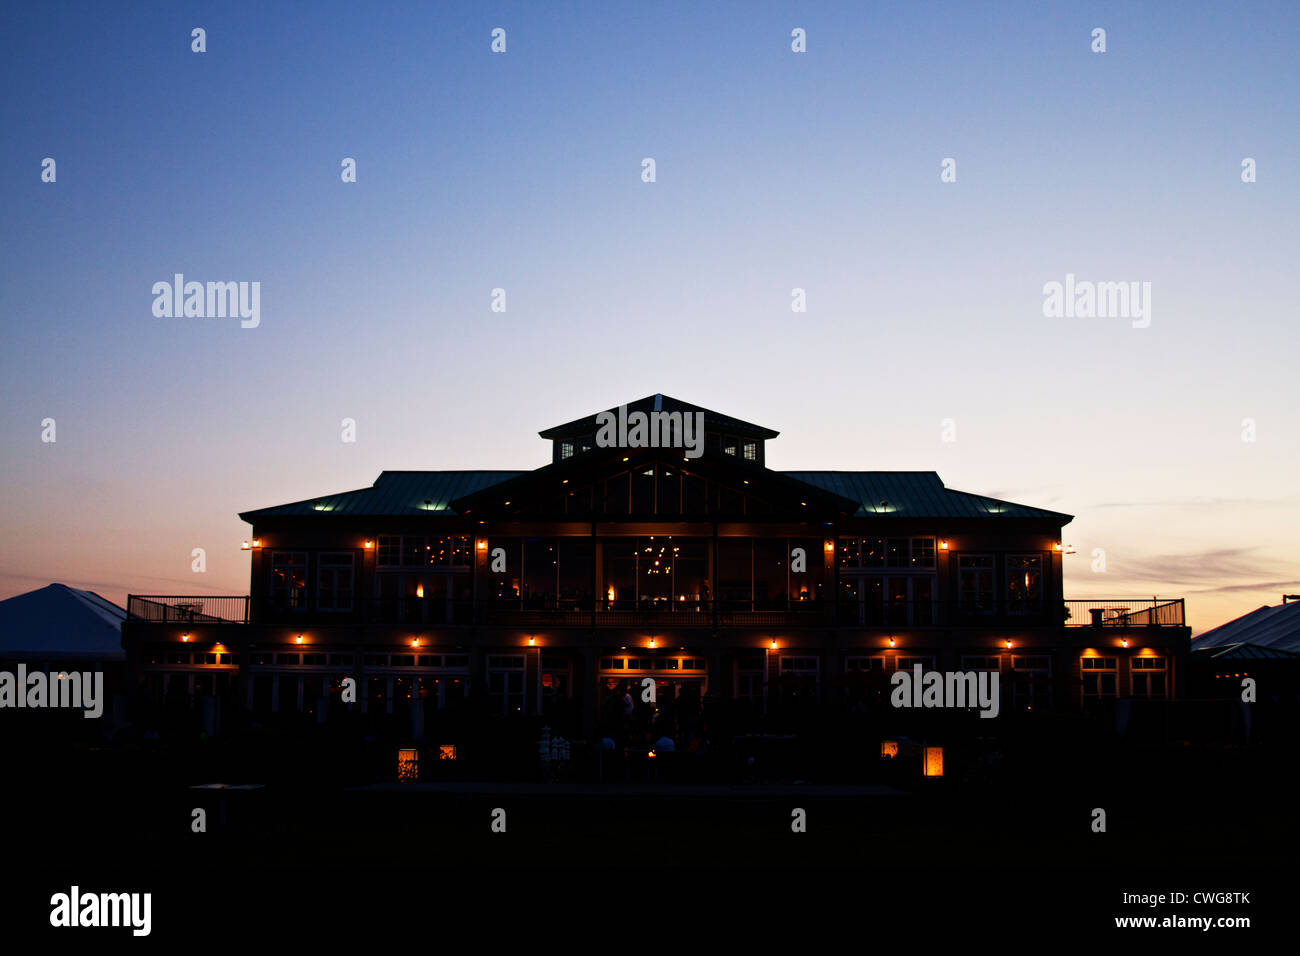 Large building in silhouette darkness dusk - Stock Image